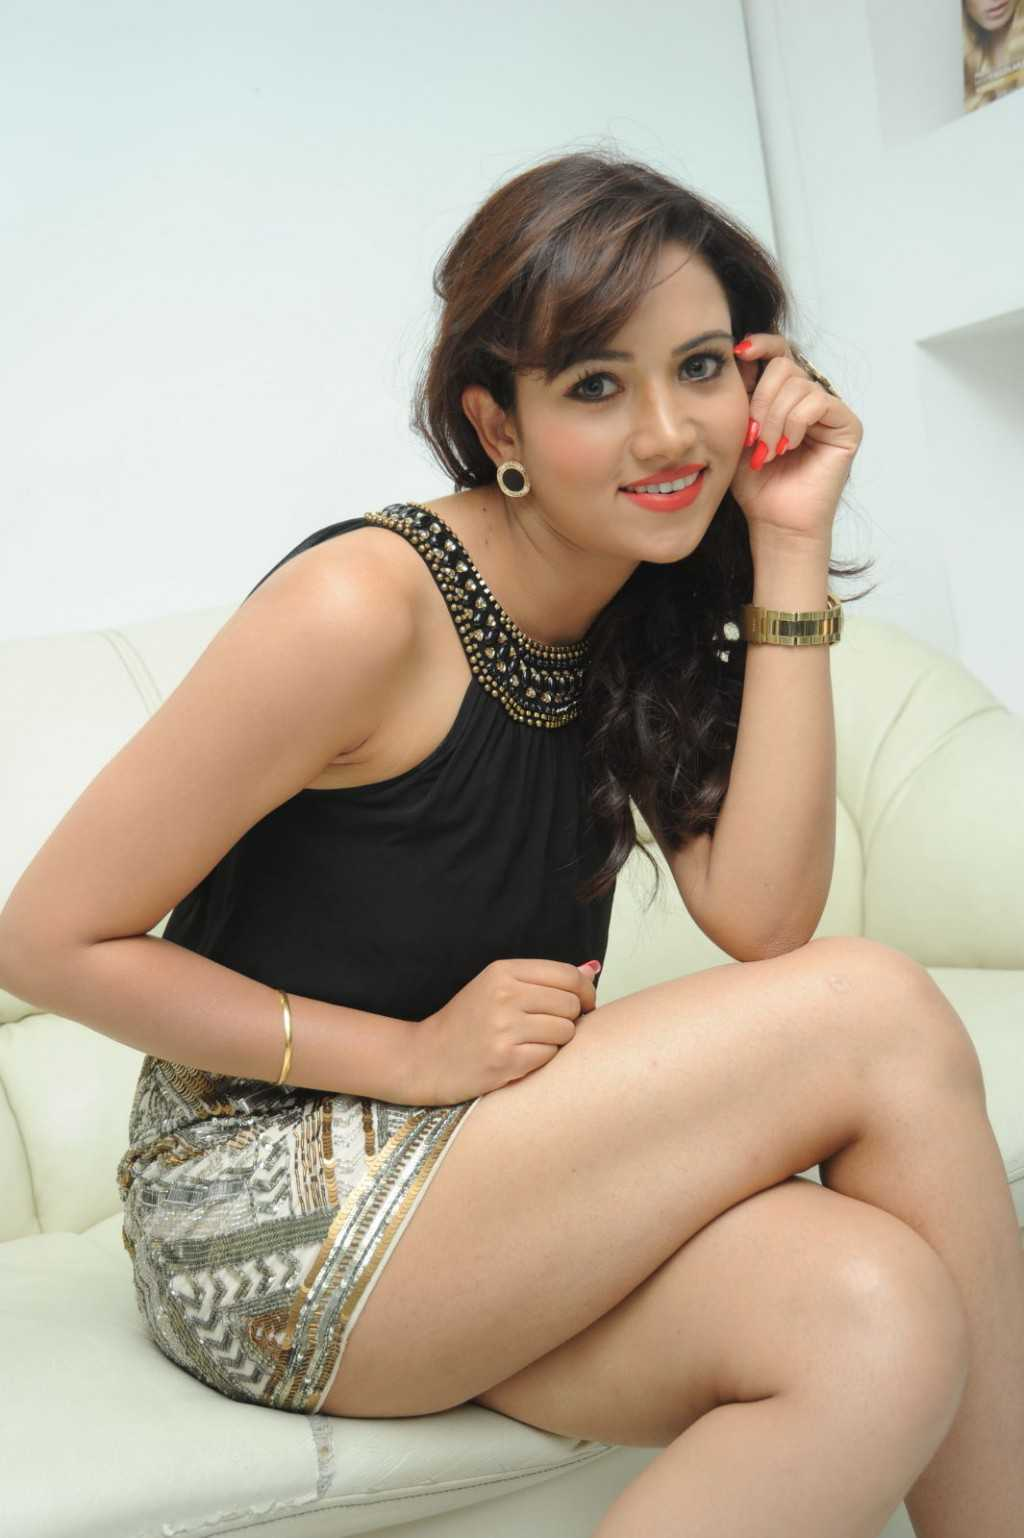 South-Indian-Actress-Preeti-Rana-Hot-Thigh-Show-Photos-3